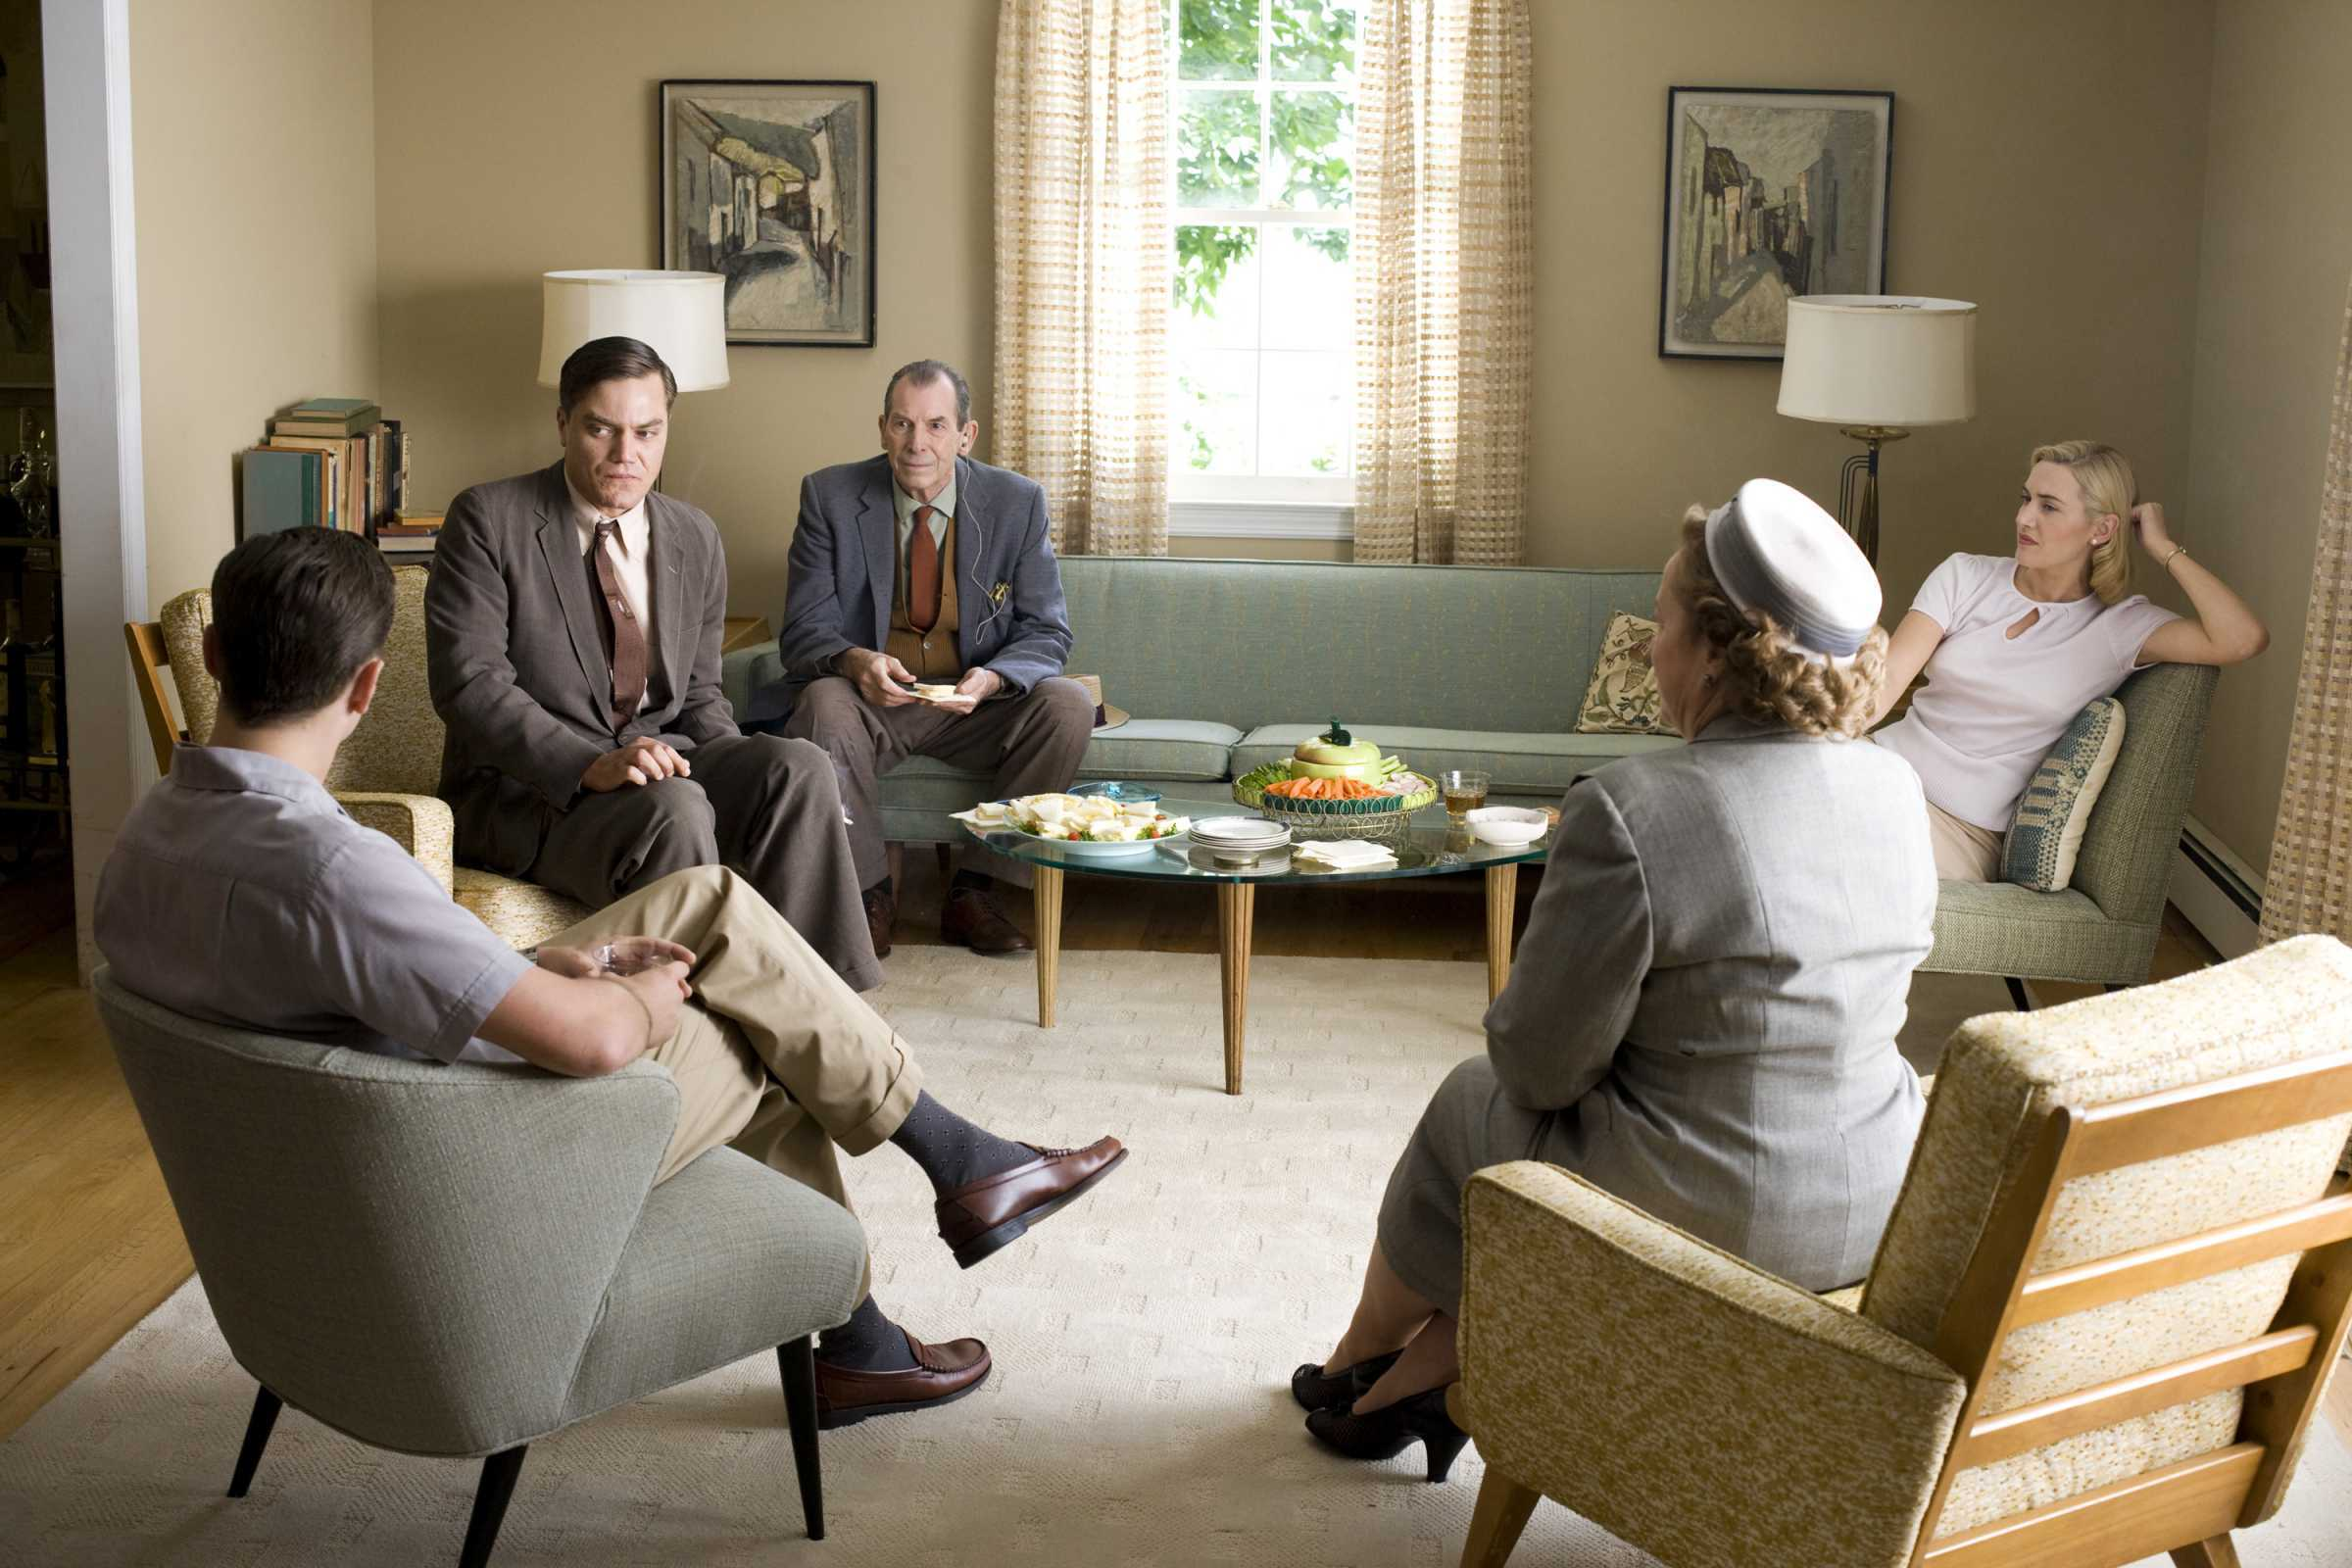 Revolutionary road leonardo dicaprio photo 8608010 for Home decor inc 6650 tomken road